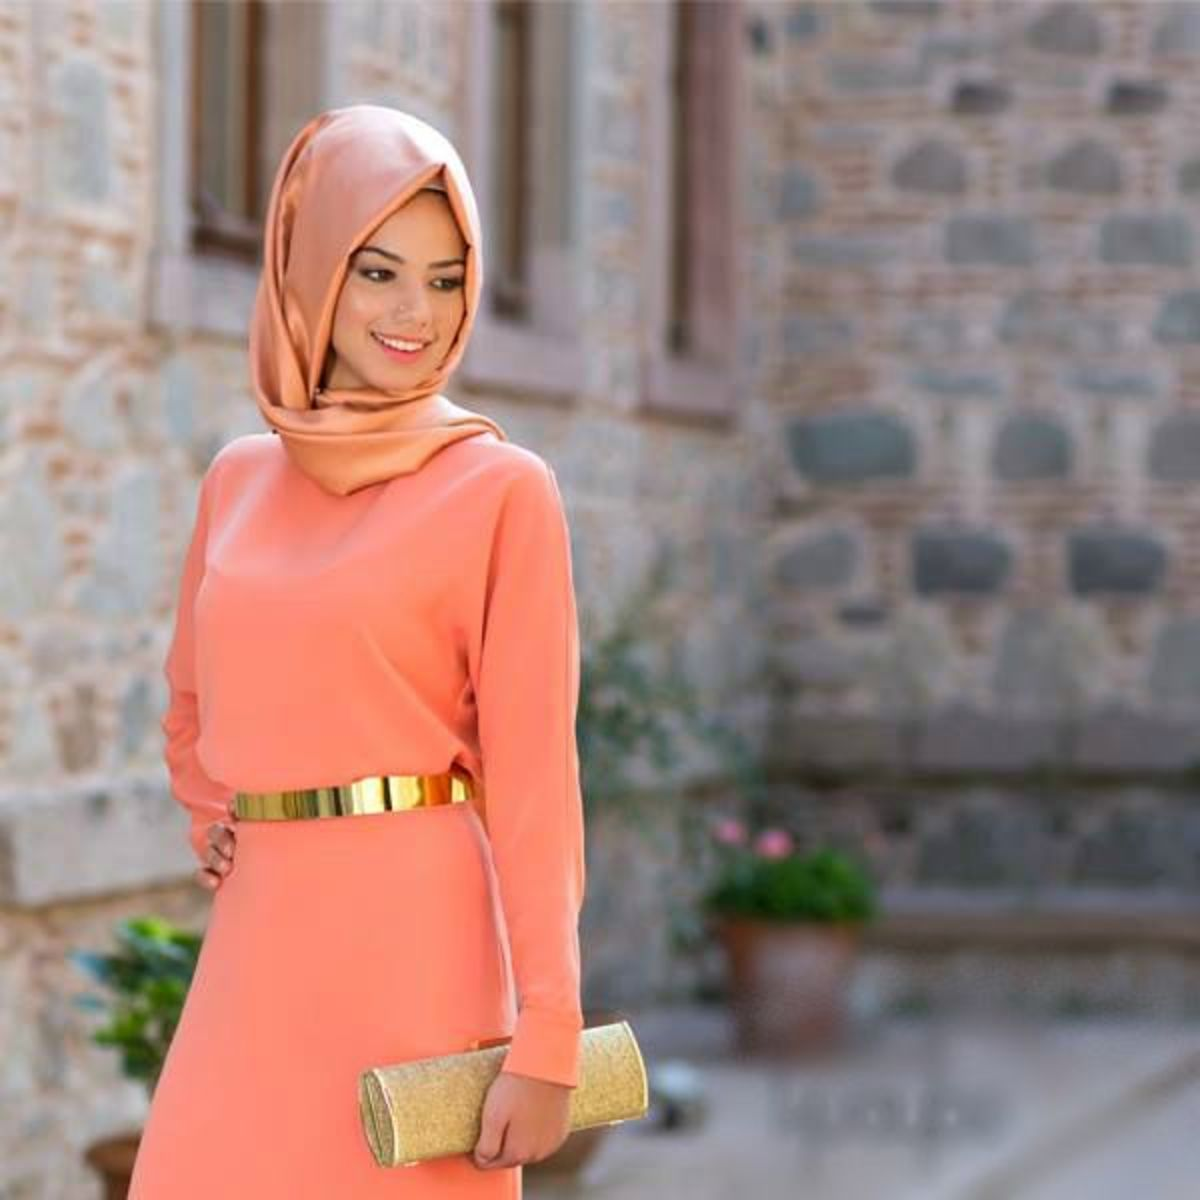 Woman in Hijab wearing Peach maxi dress